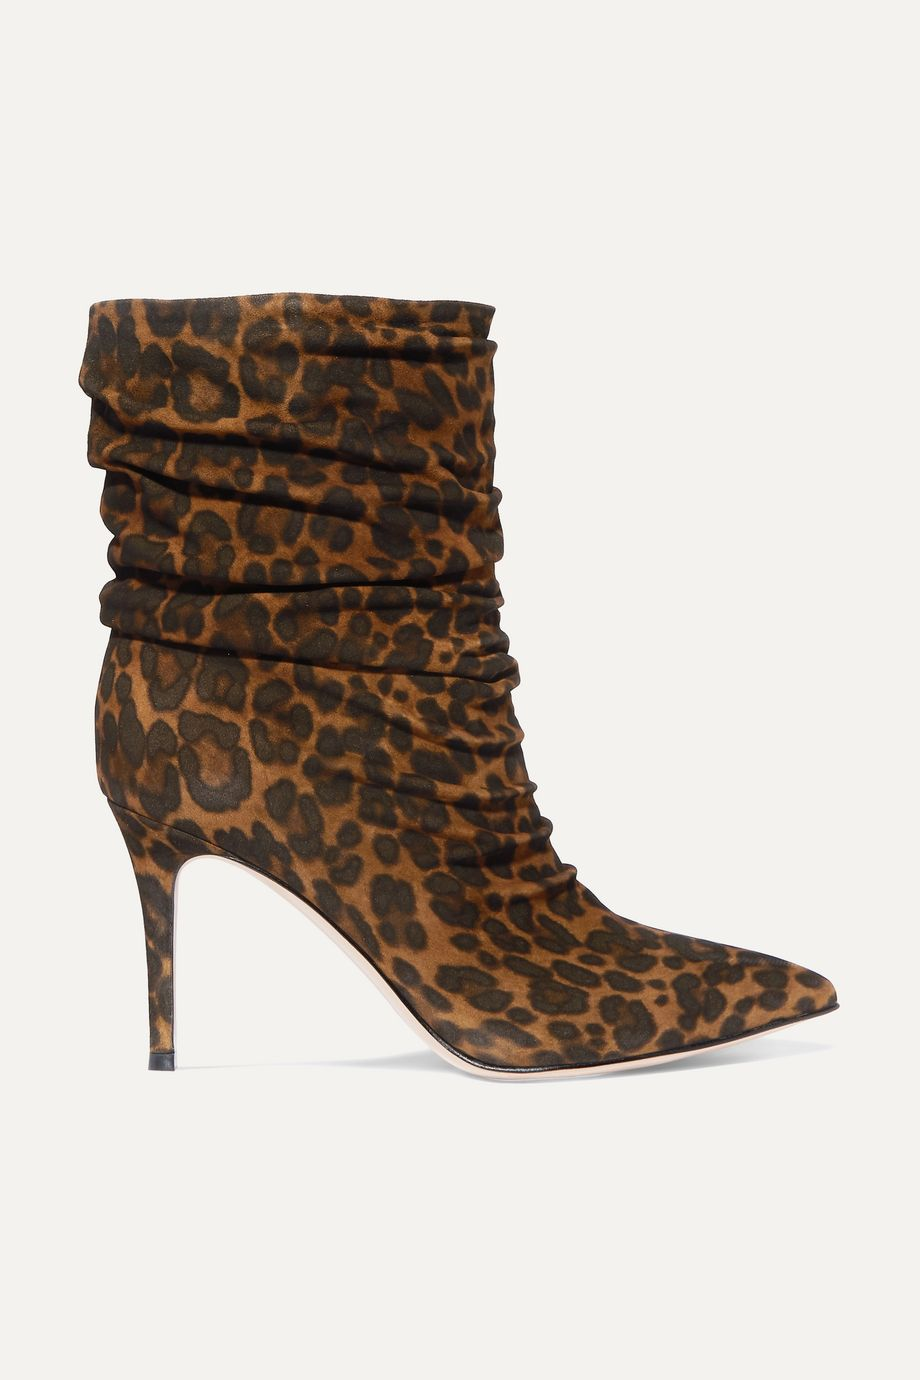 Gianvito Rossi Cecile 85 leopard-print suede ankle boots